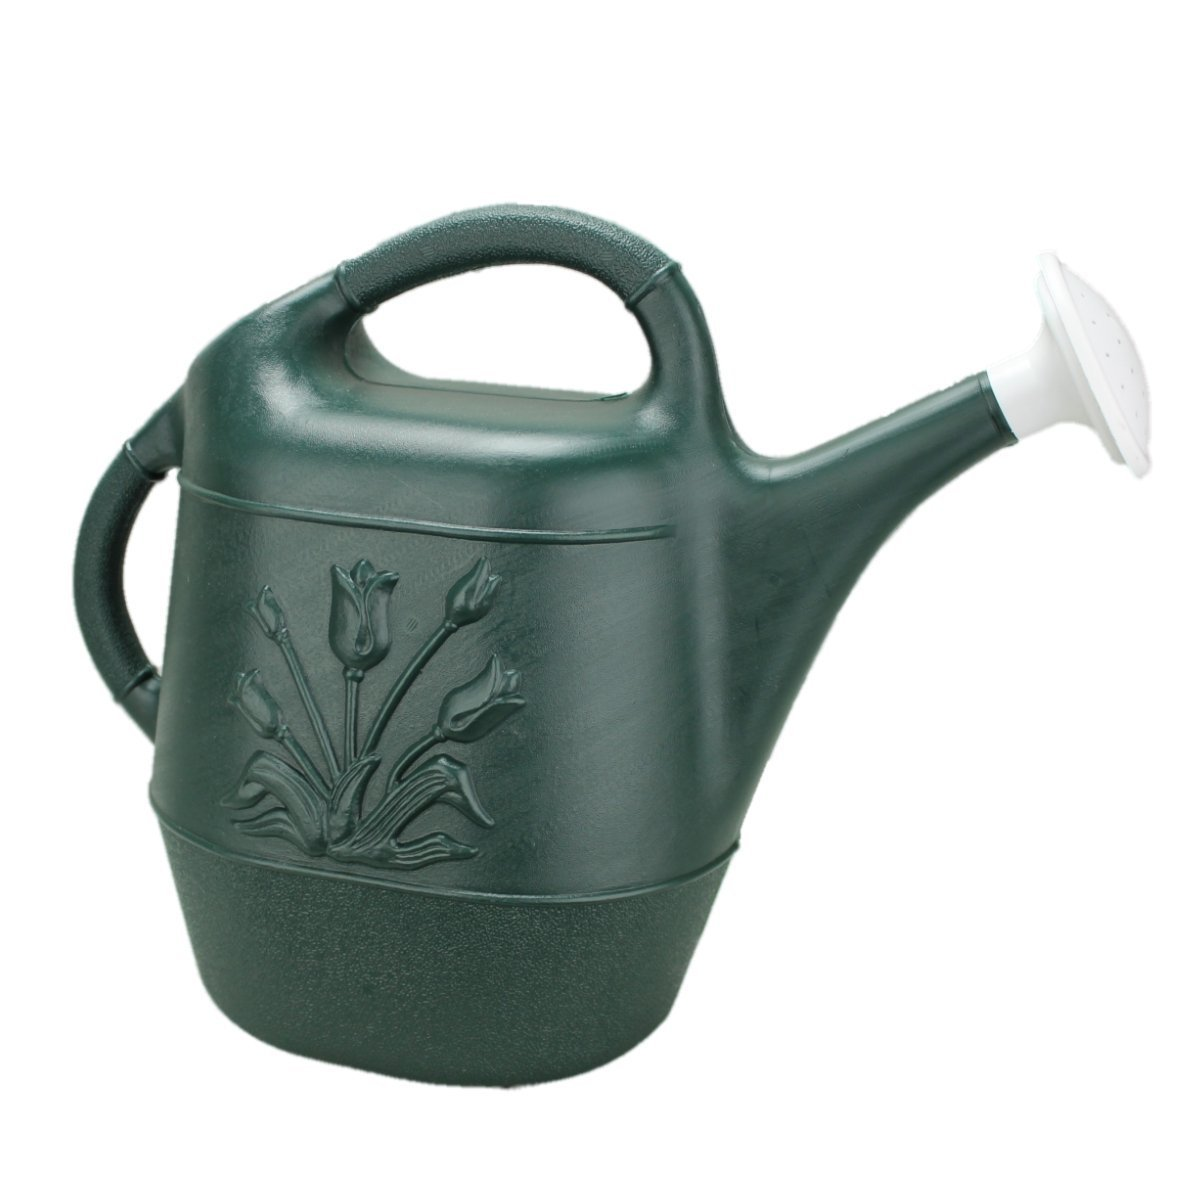 CADO 63065 2Gal Green Watering Can, 2 gallon Hunter